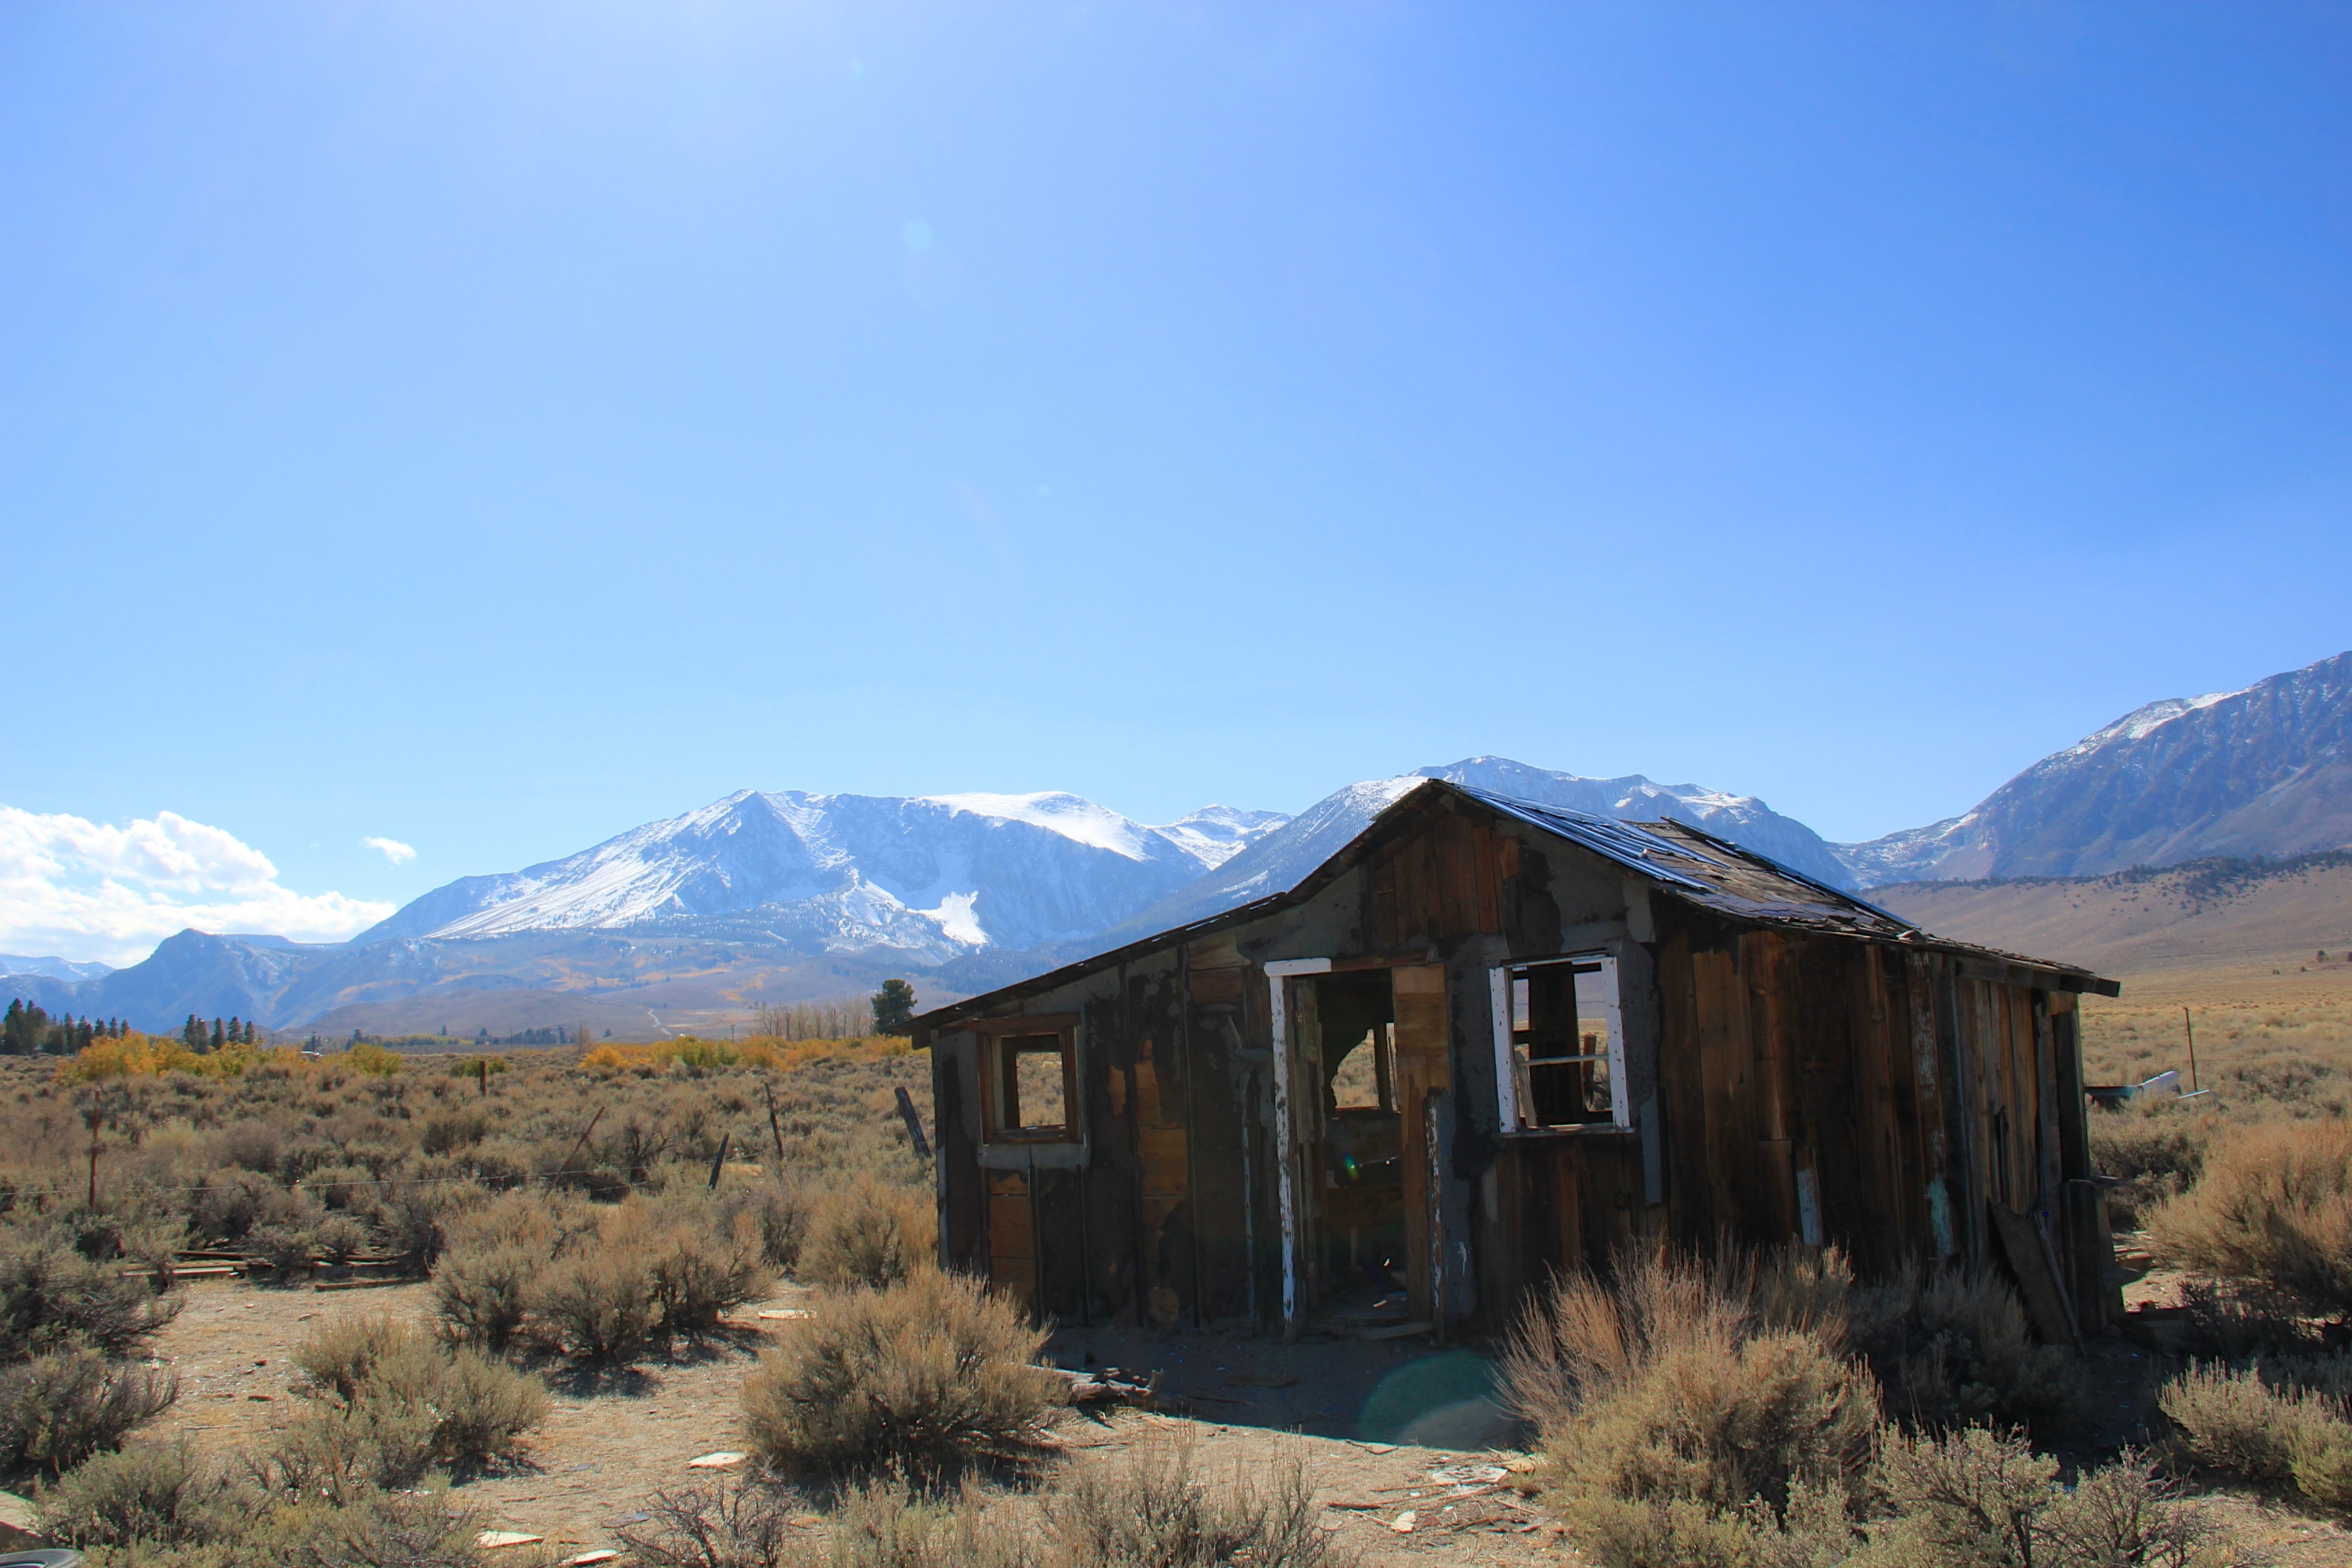 File Decay House And Sierra Nevada Mountains Flickr Daveynin Jpg Wikimedia Commons